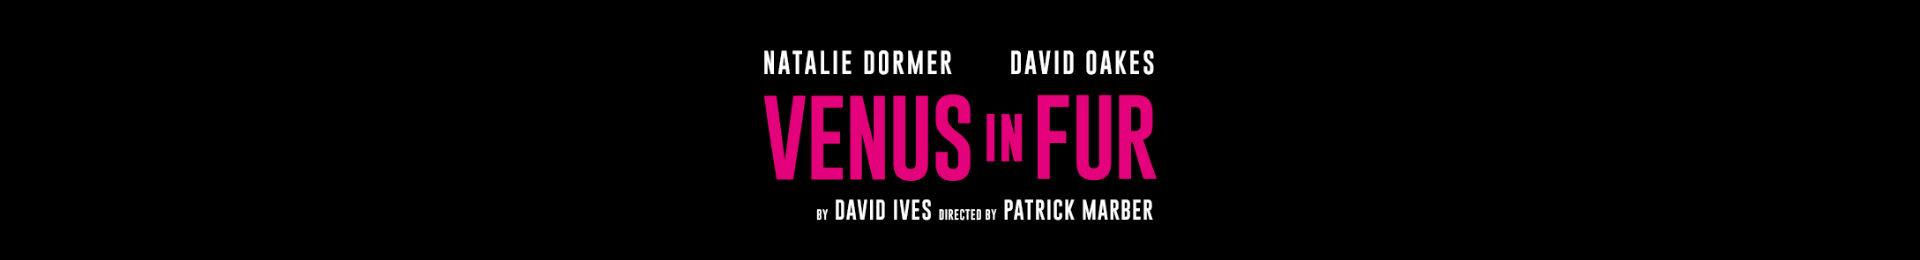 Venus in Fur banner image